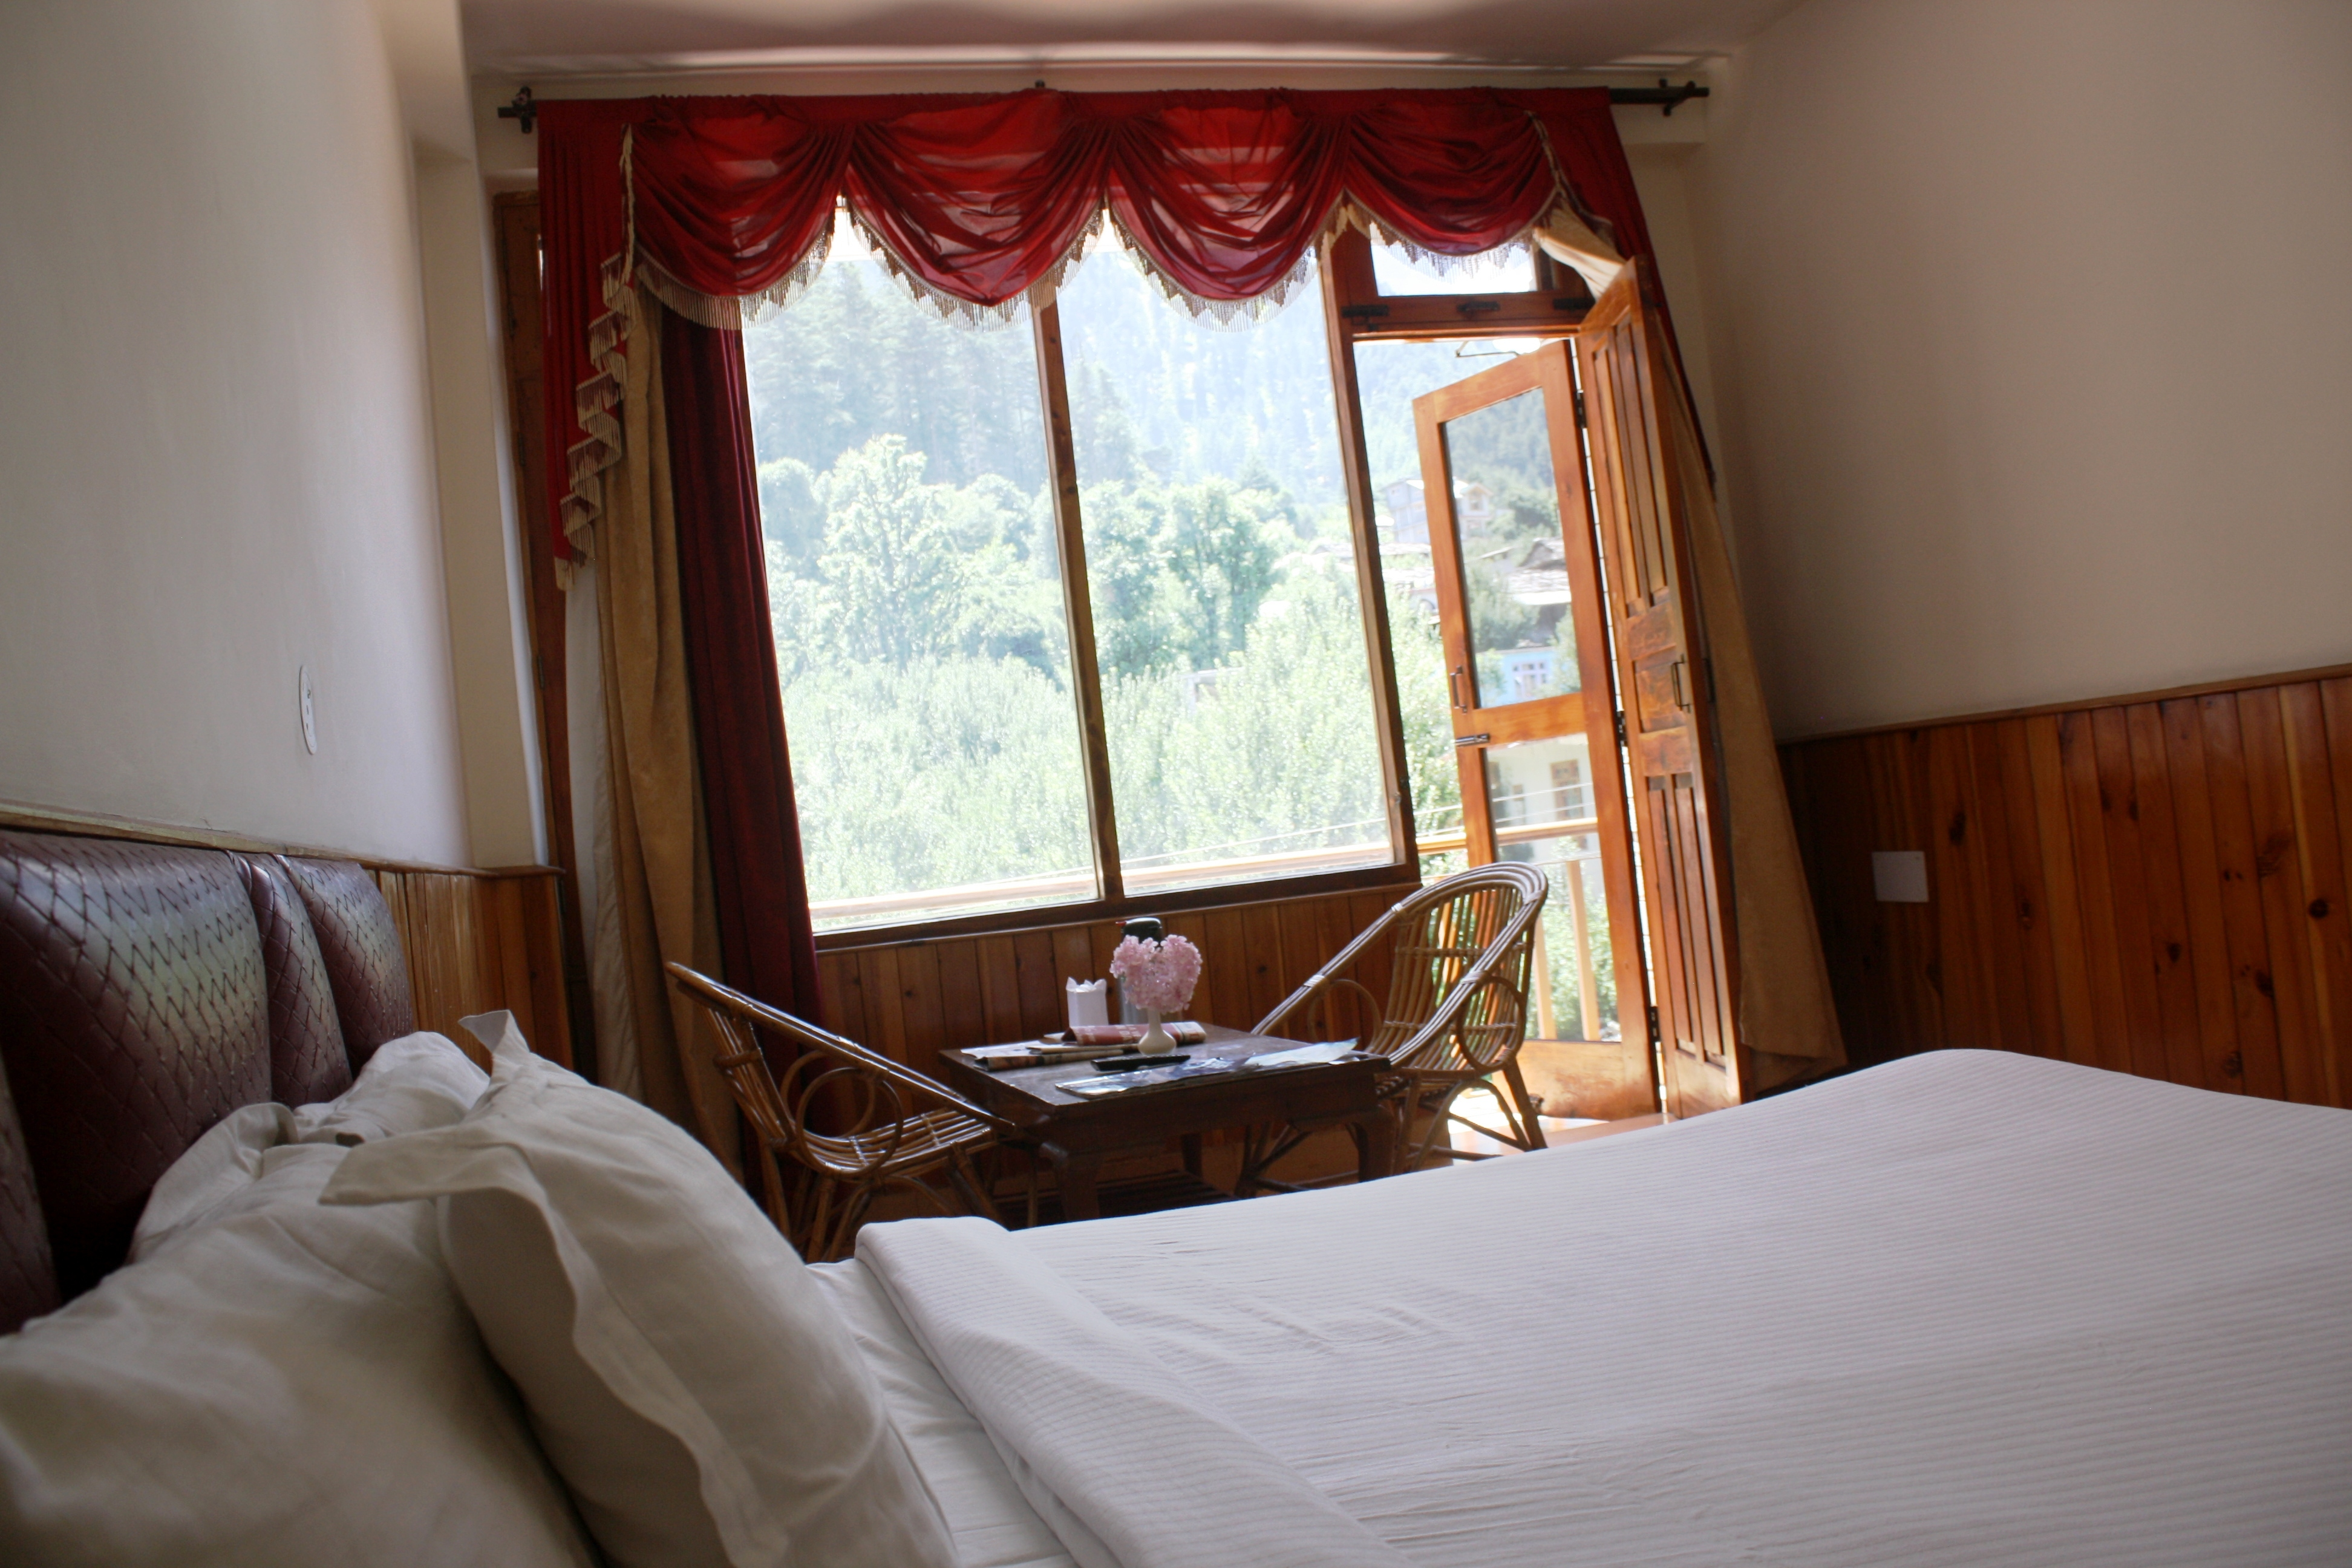 Deluxe Room Pine View(MAP), SARTHAK RESORTS KHAKHNAL( MANALI) - Budget Hotels in Manali